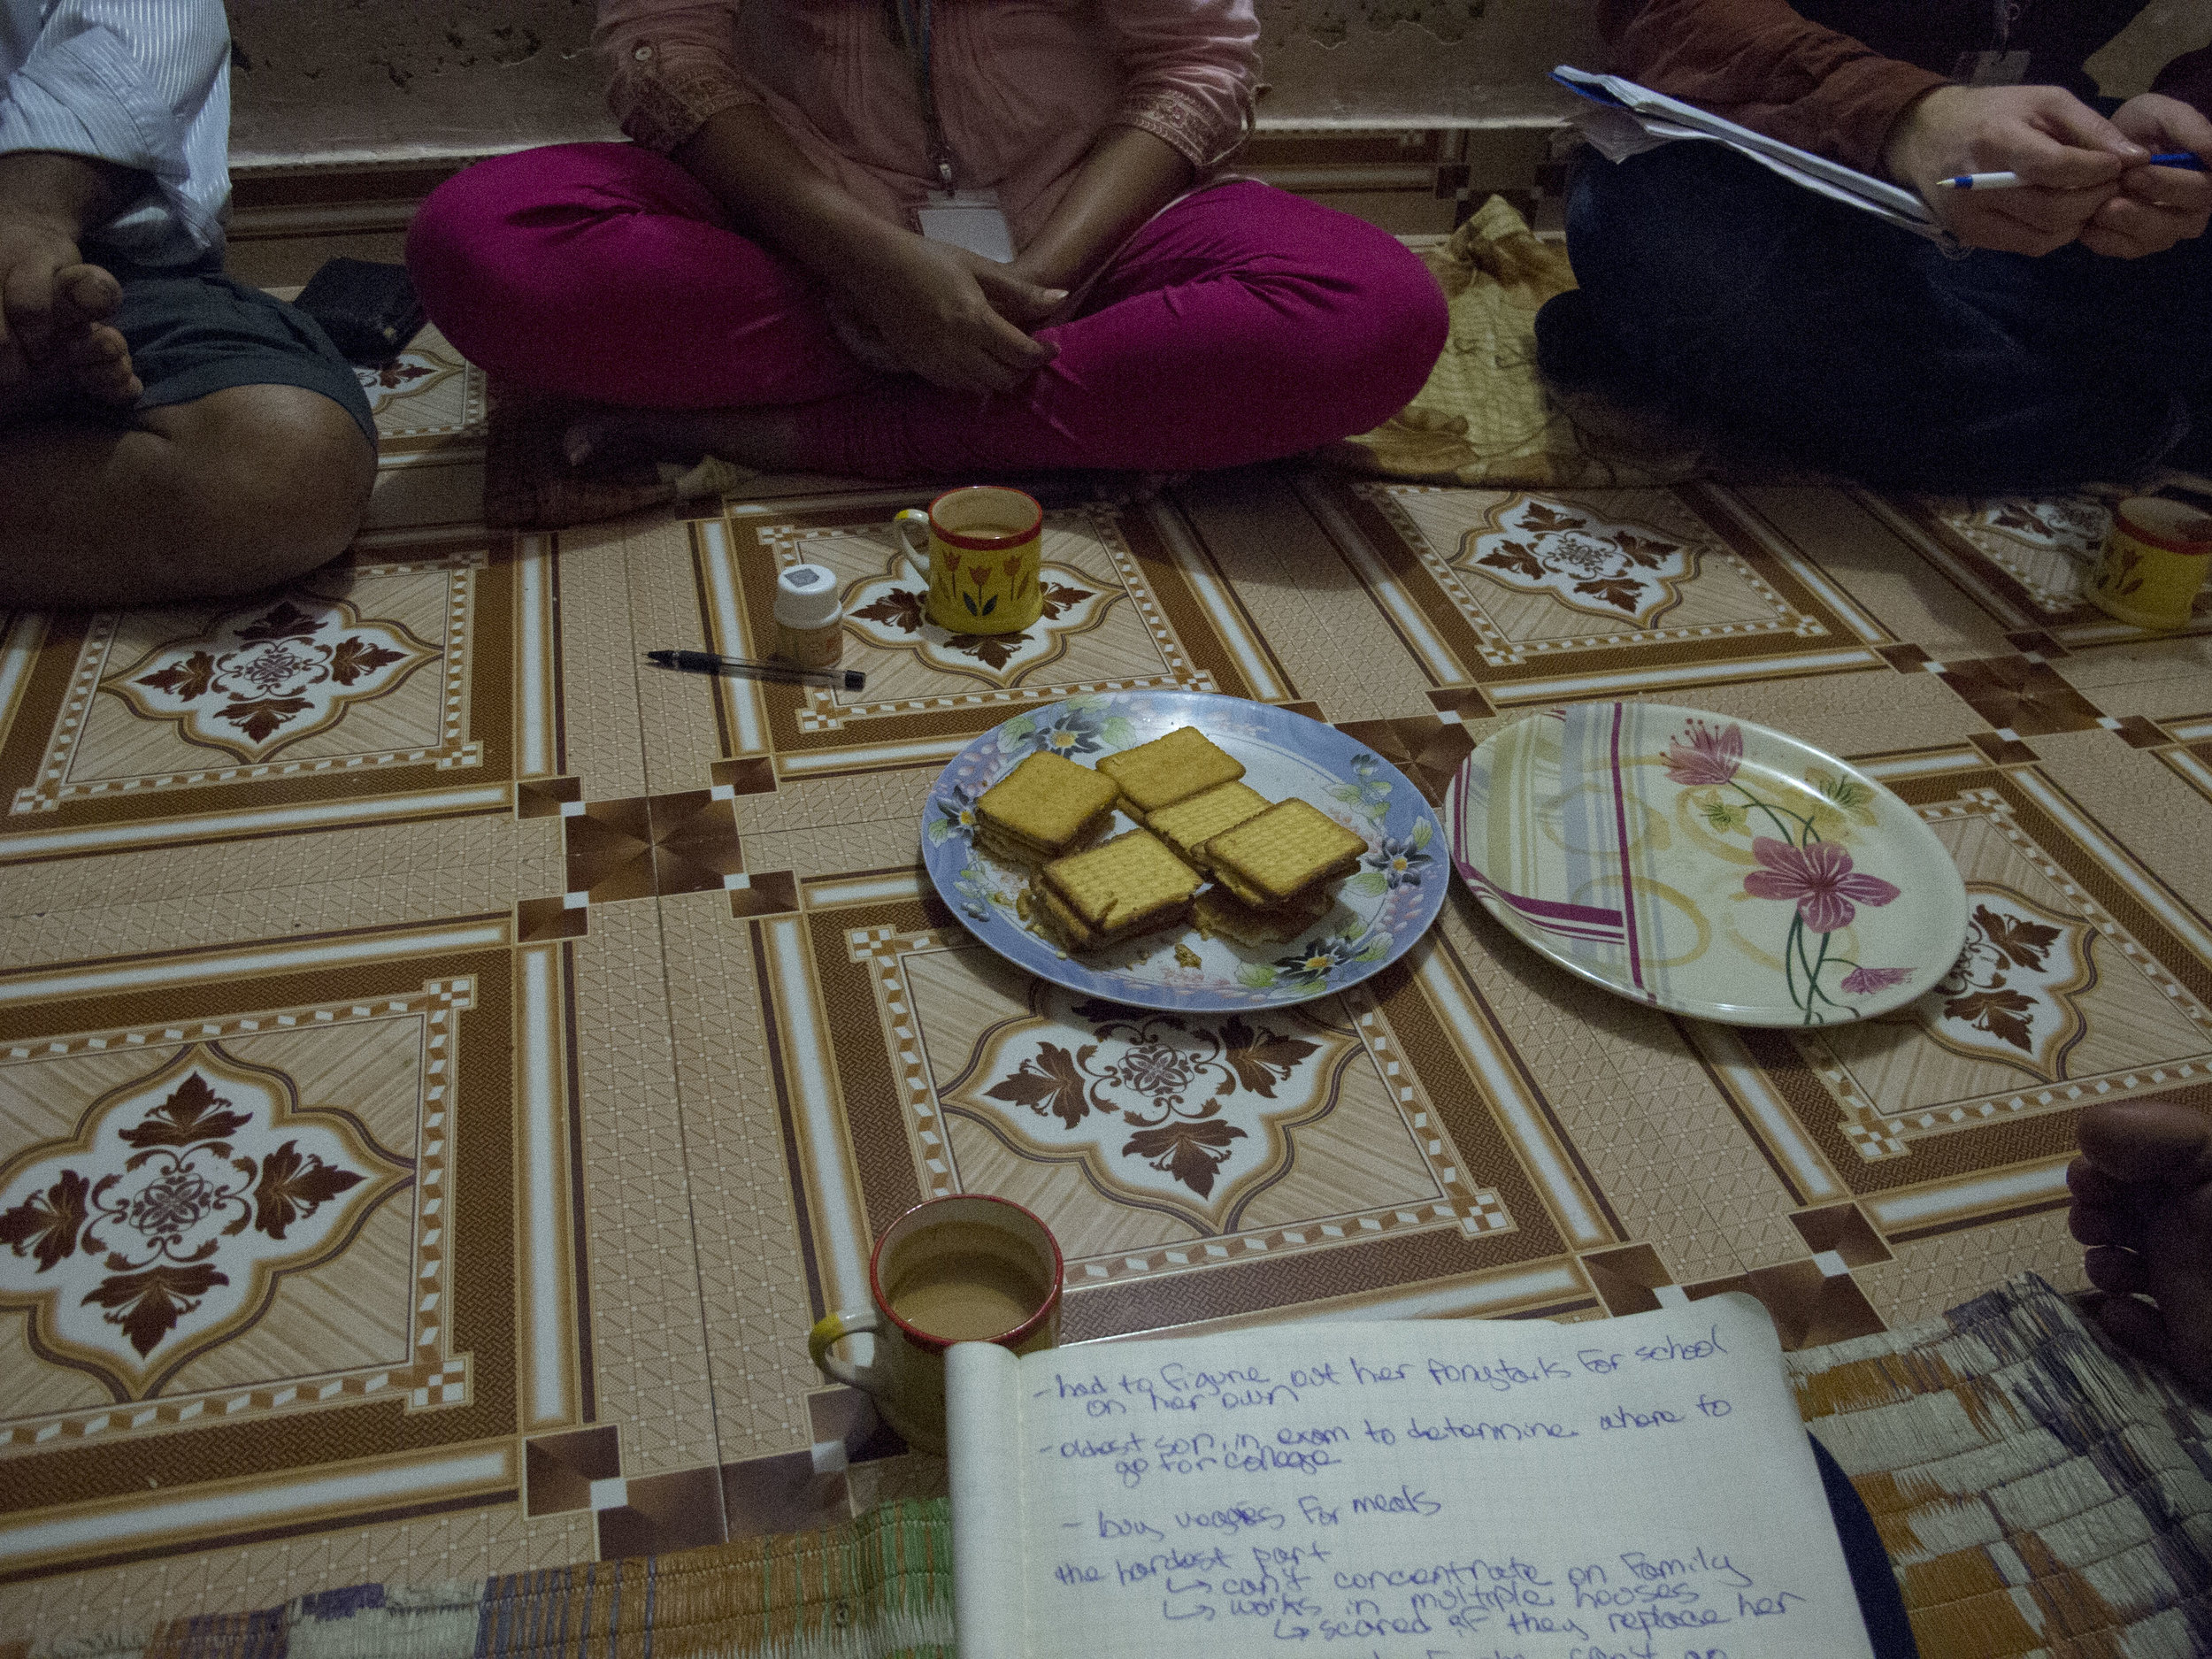 Chai and biscuits during an in-home interview.